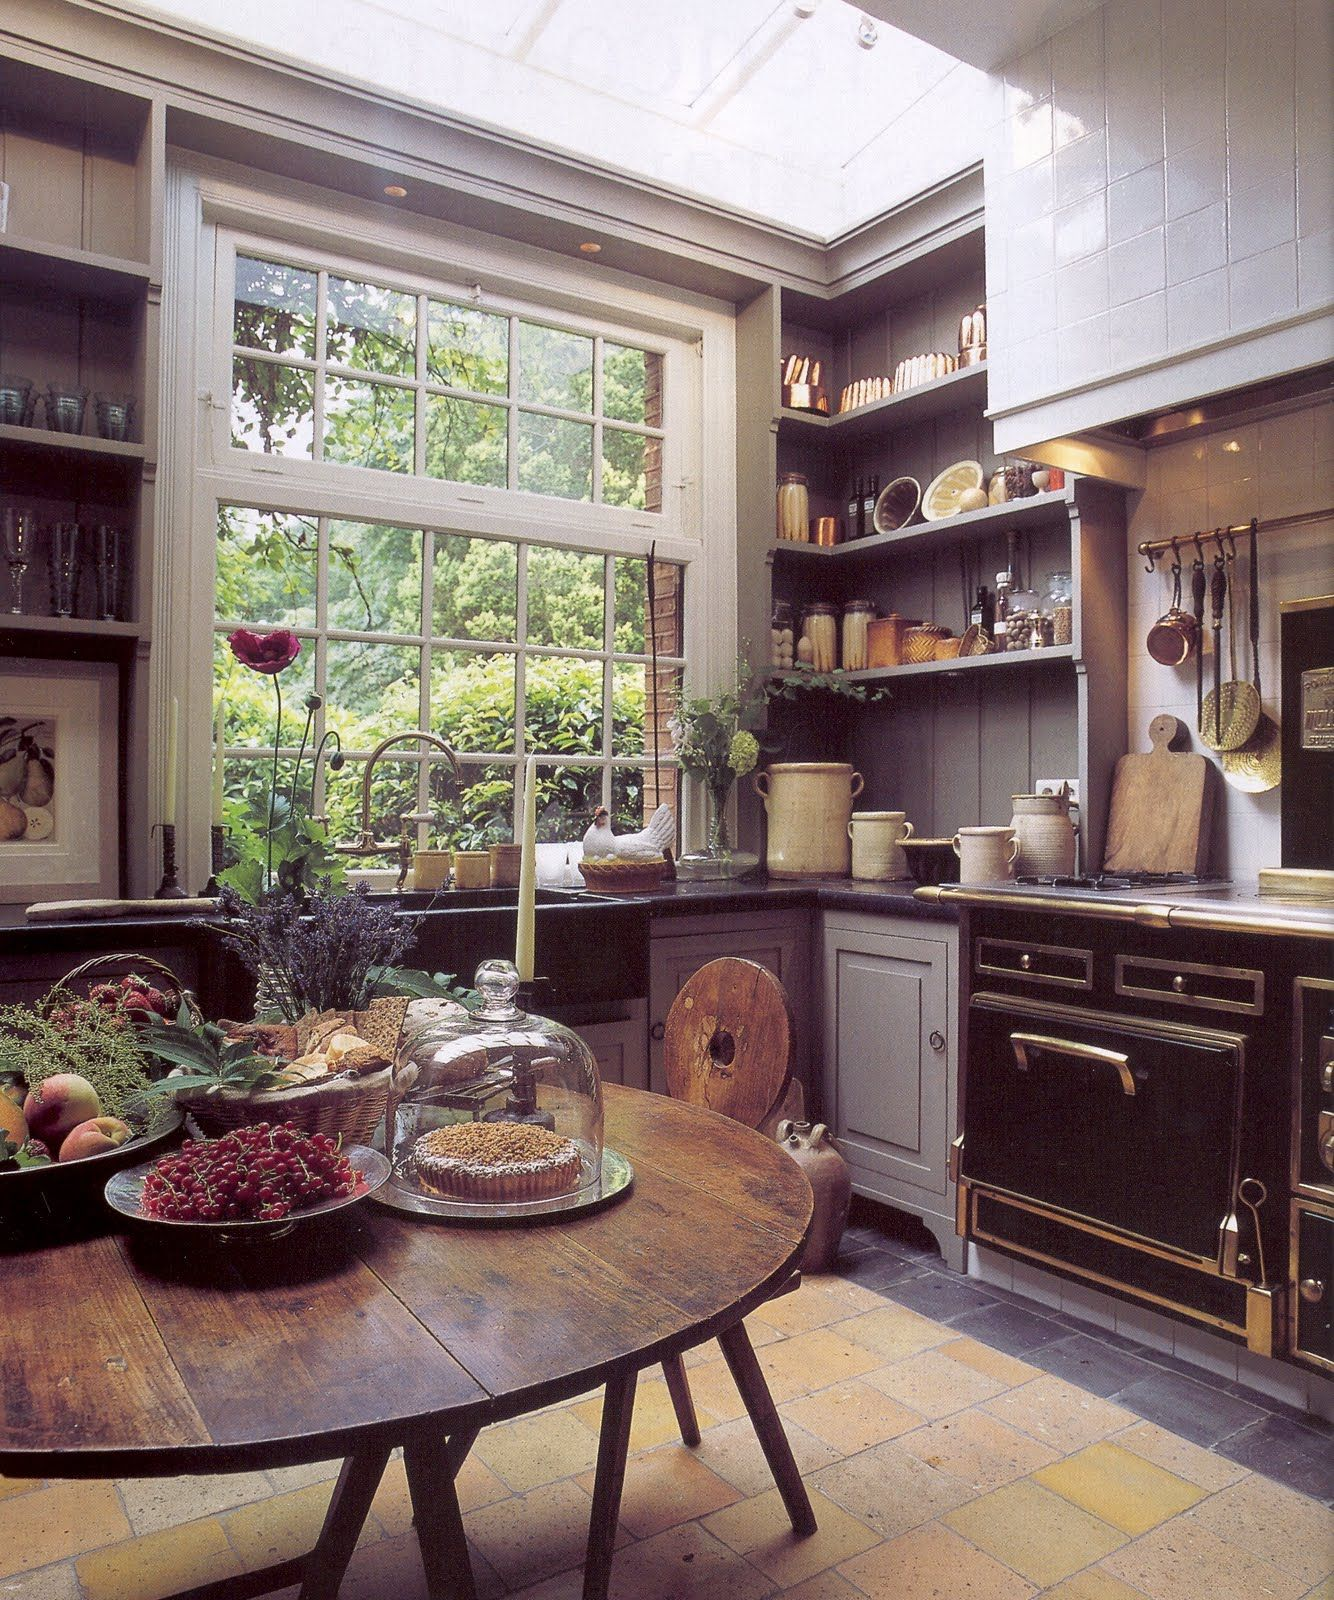 Pin by jaimee chase on home pinterest belgian pearls kitchen